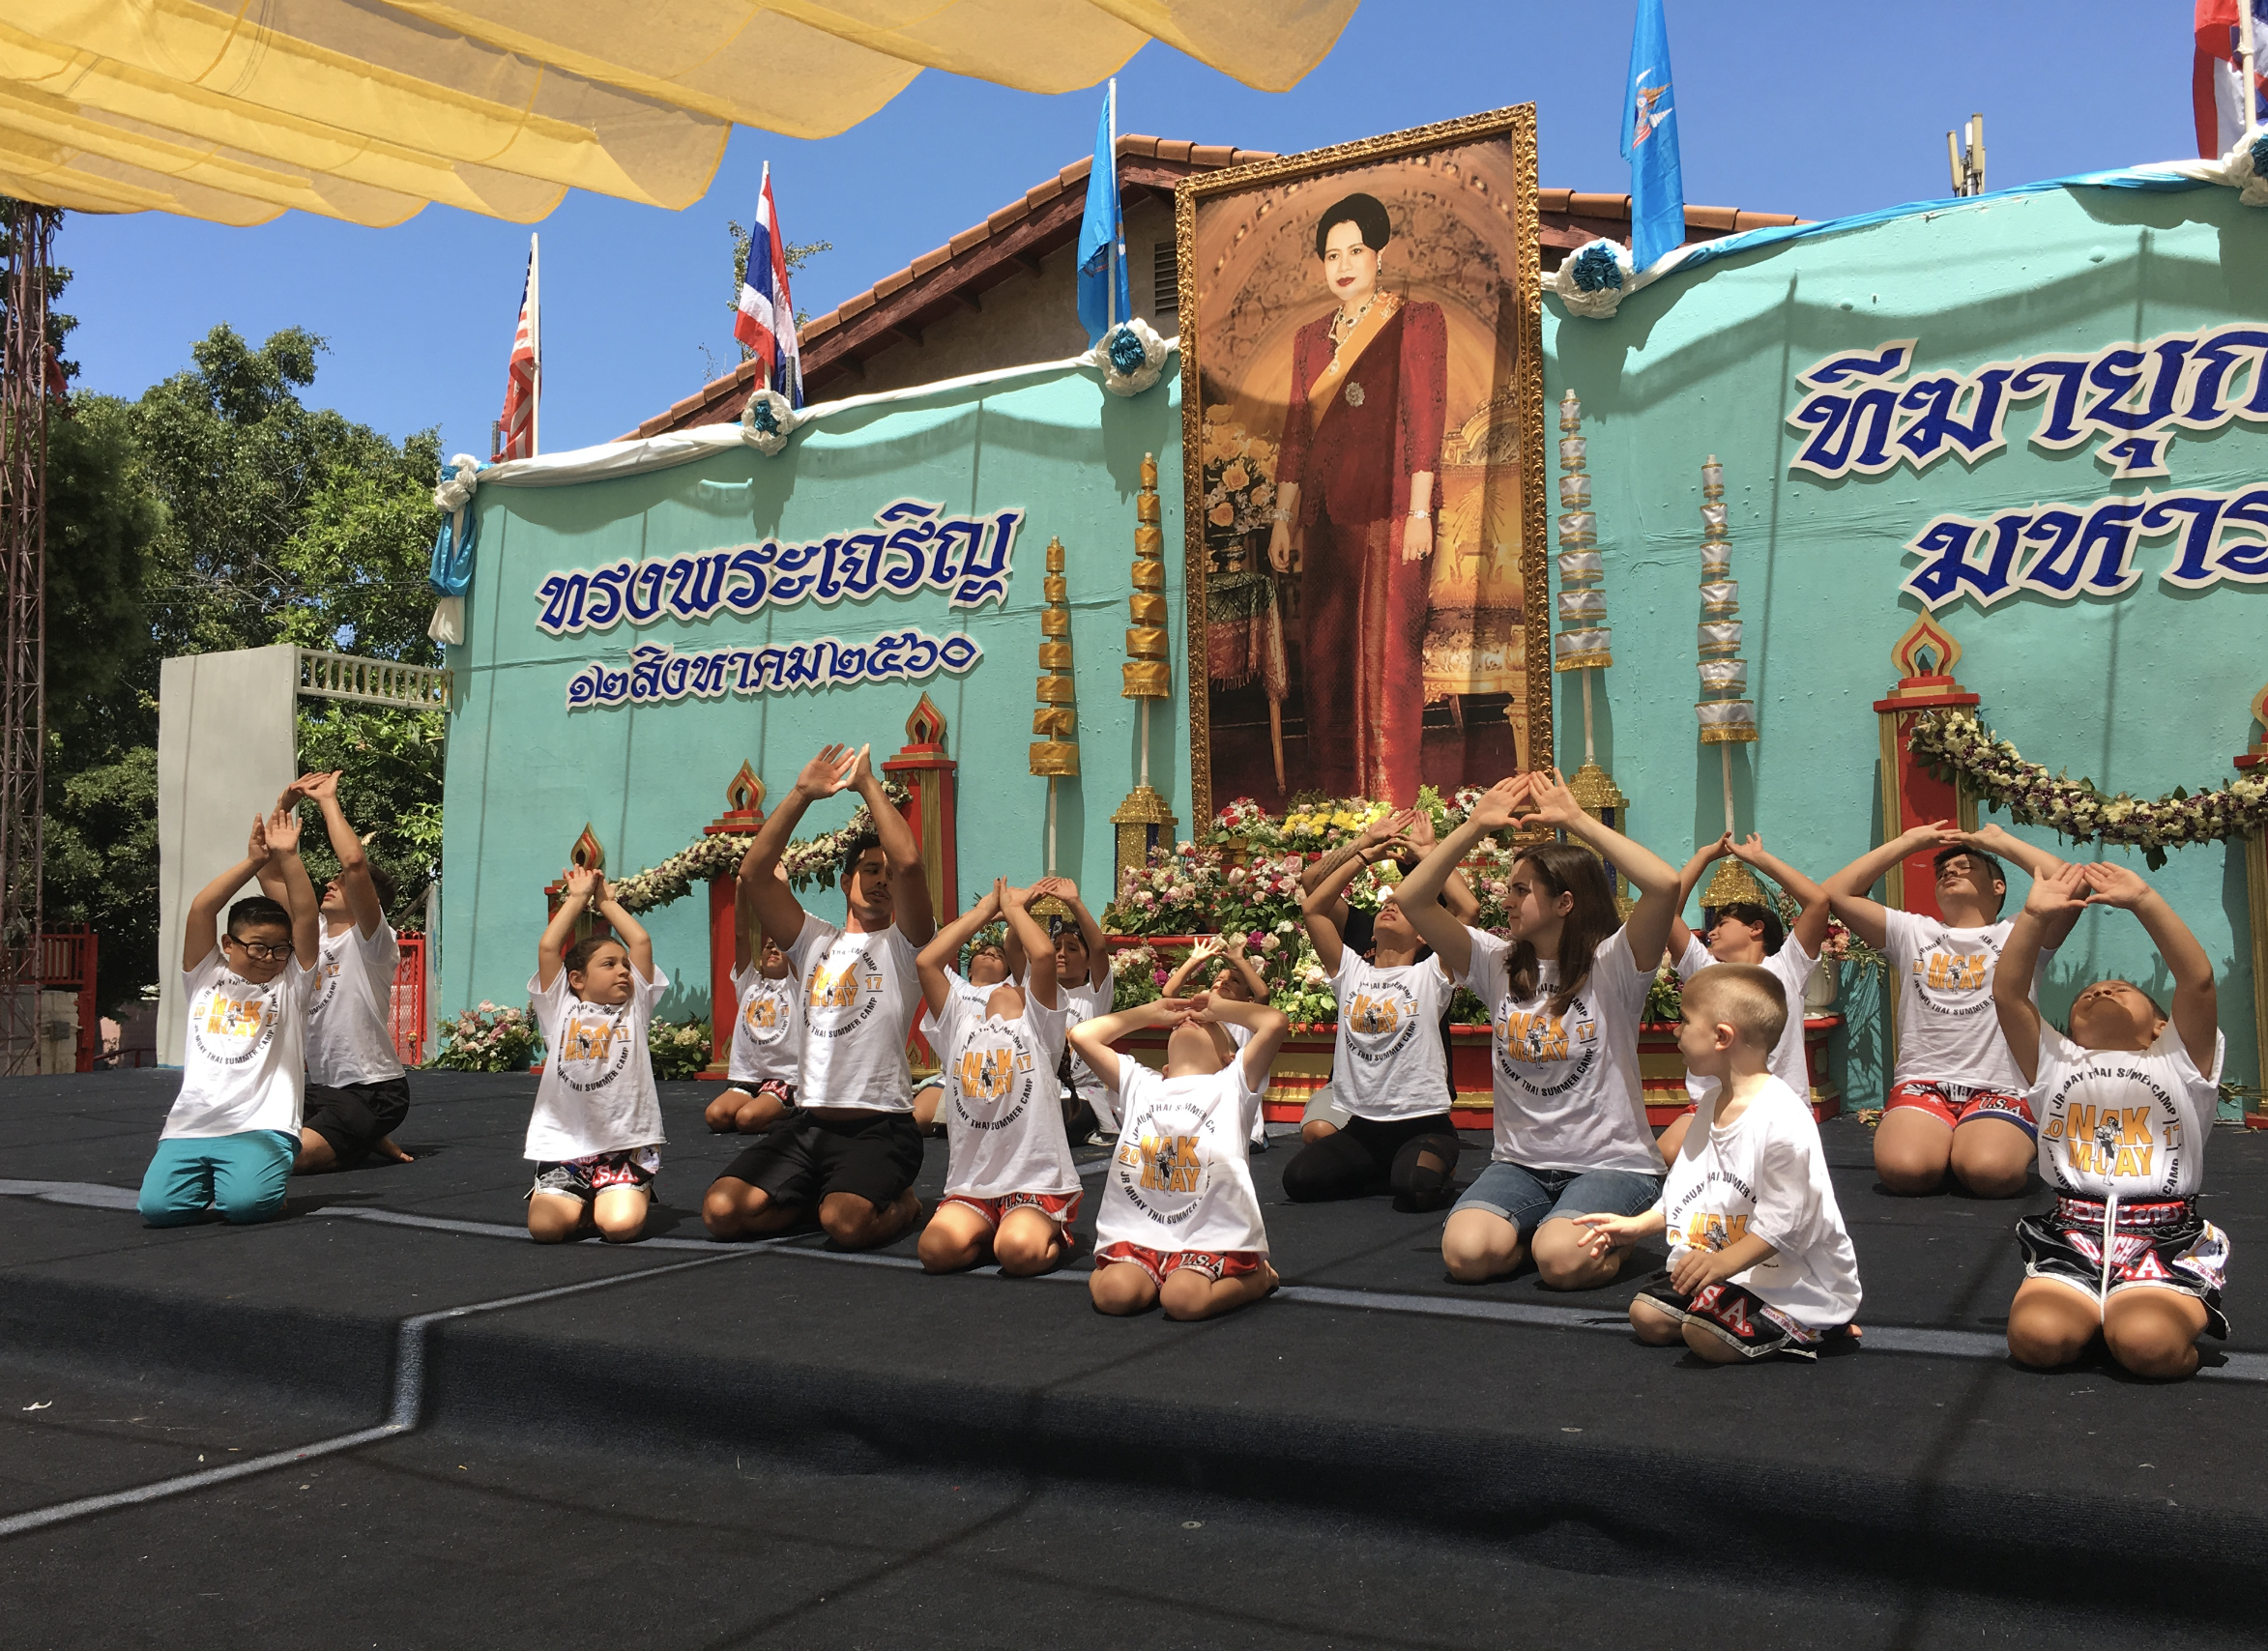 PERFORMING THE WAI KRU AT A THAI TEMPLE IN NORTH HOLLYWOOD